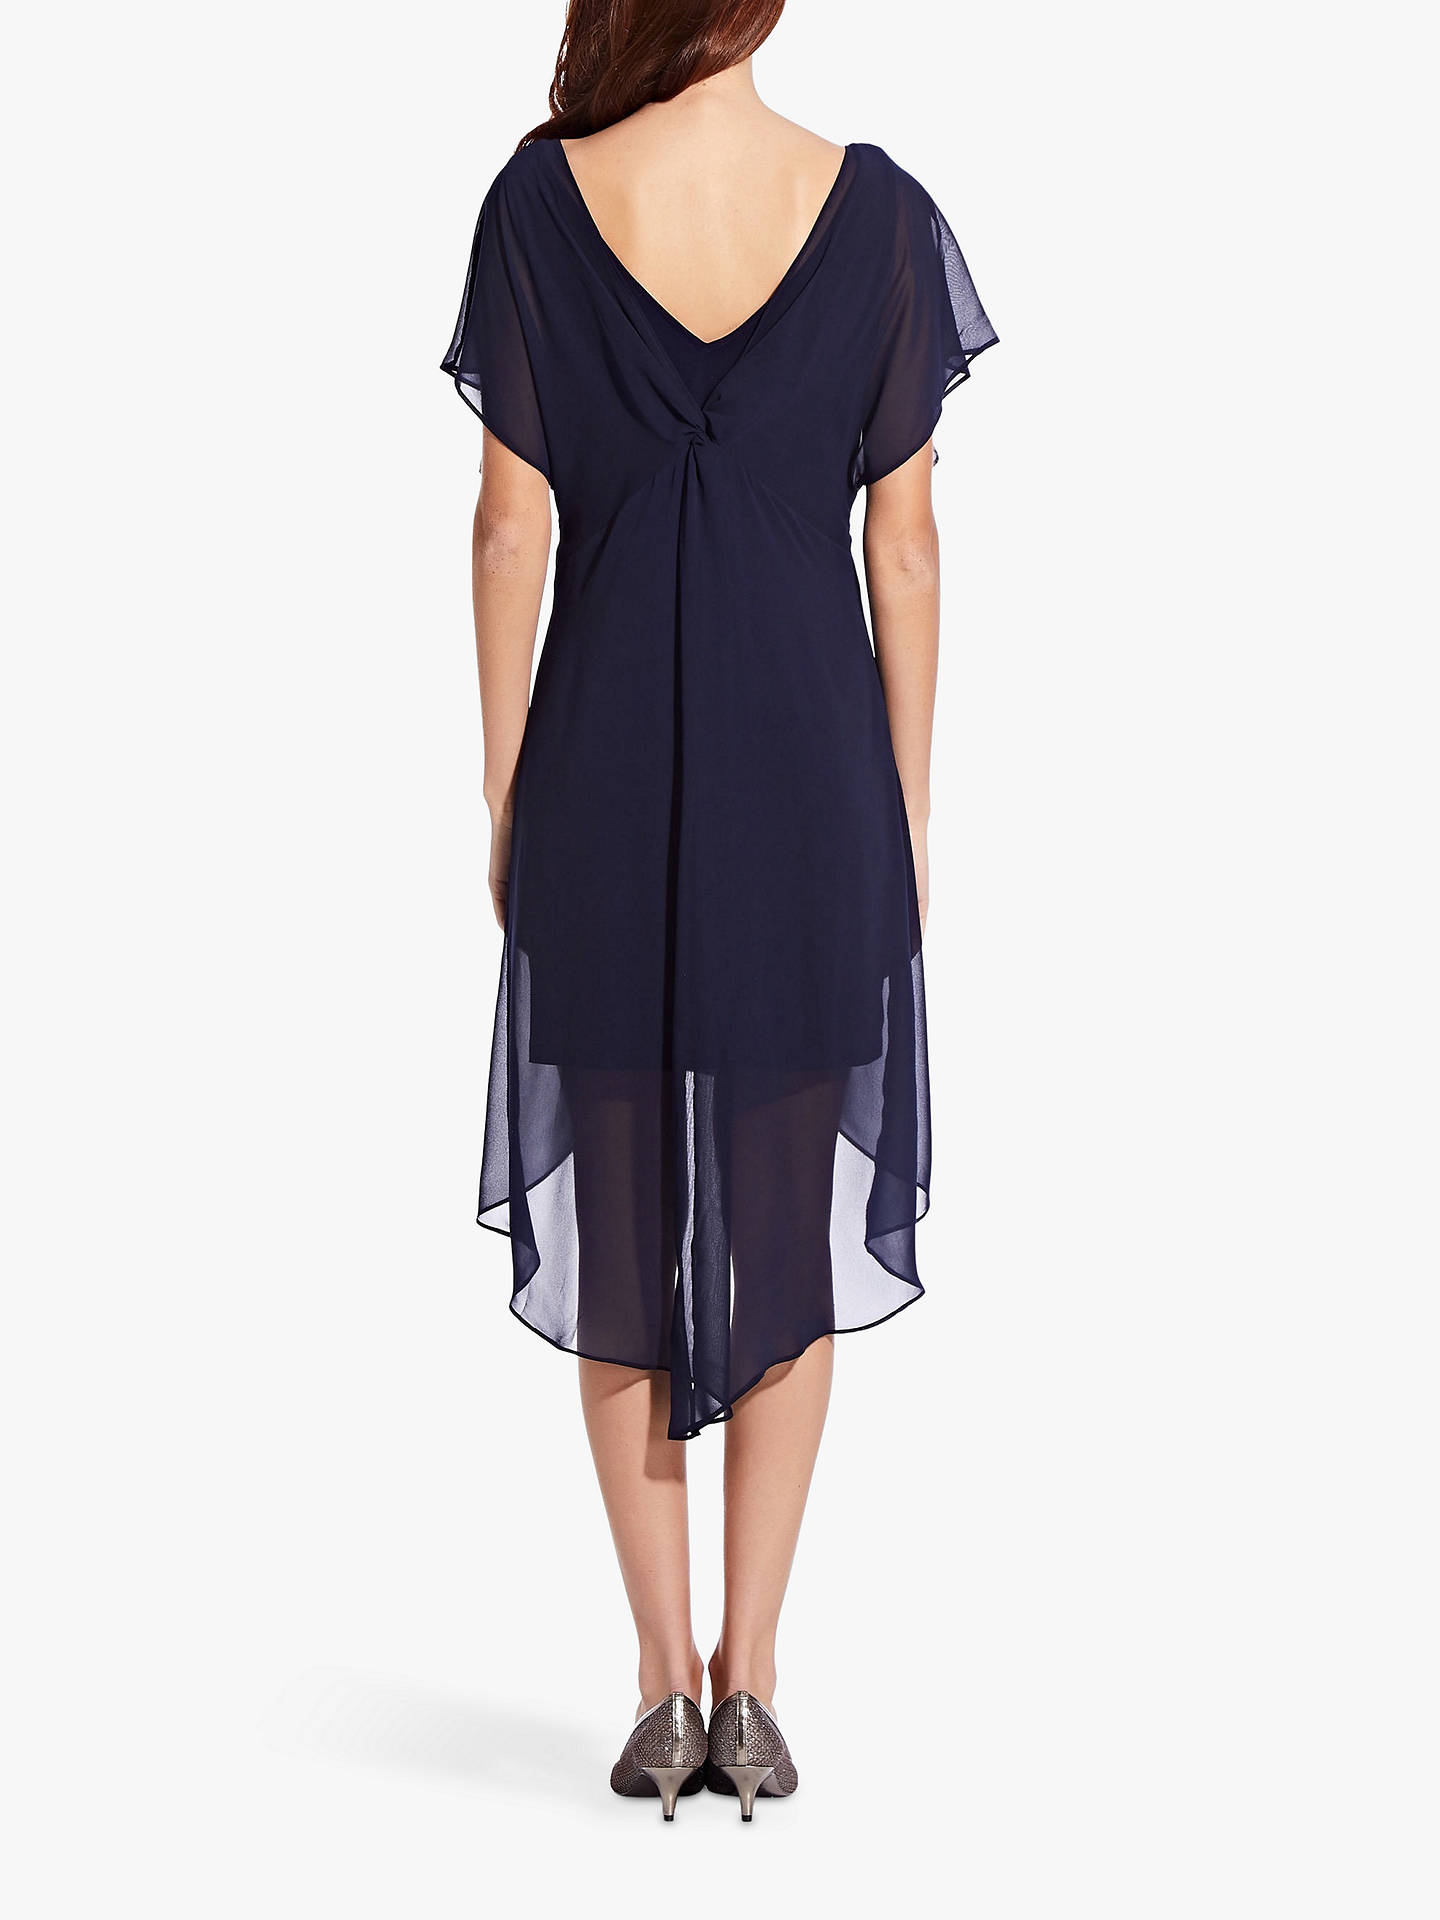 Horizontal Tienda entrega a domicilio  Adrianna Papell Chiffon Overlay Draped Dress, Navy at John Lewis & Partners